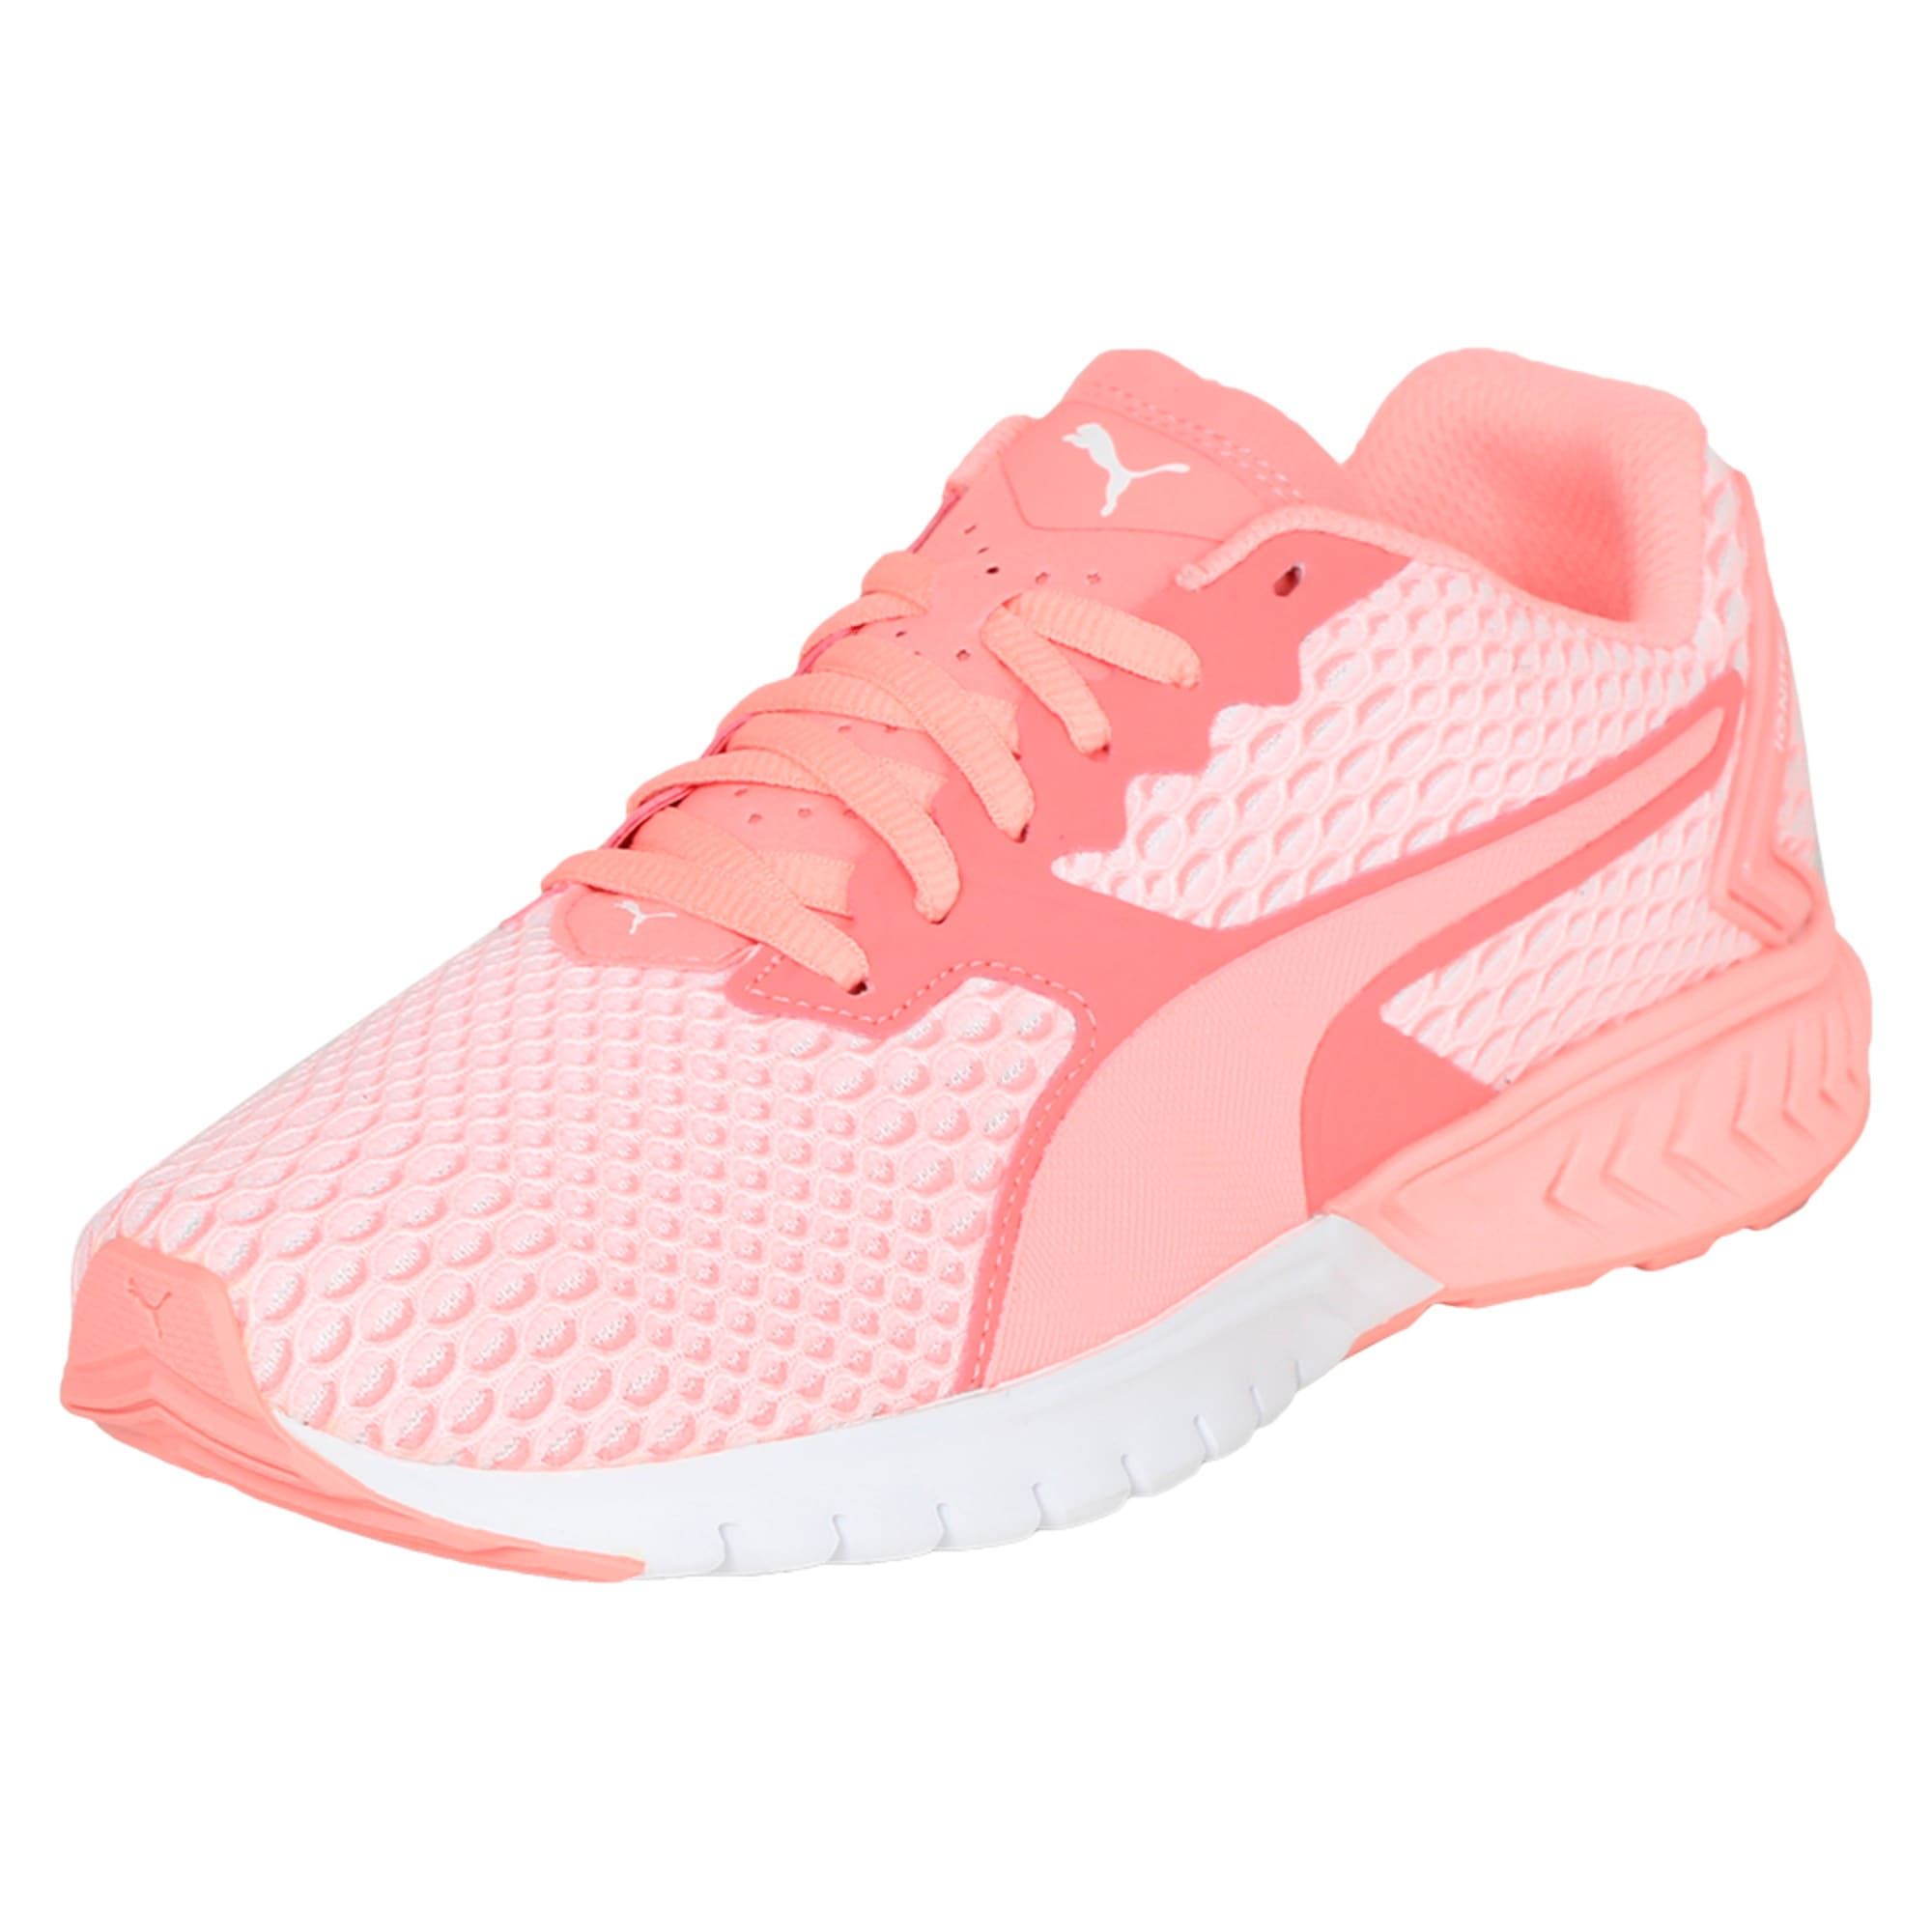 Thumbnail 1 of IGNITE Dual New Core Women's Training Shoes, SoftFluoPeach-White, medium-IND